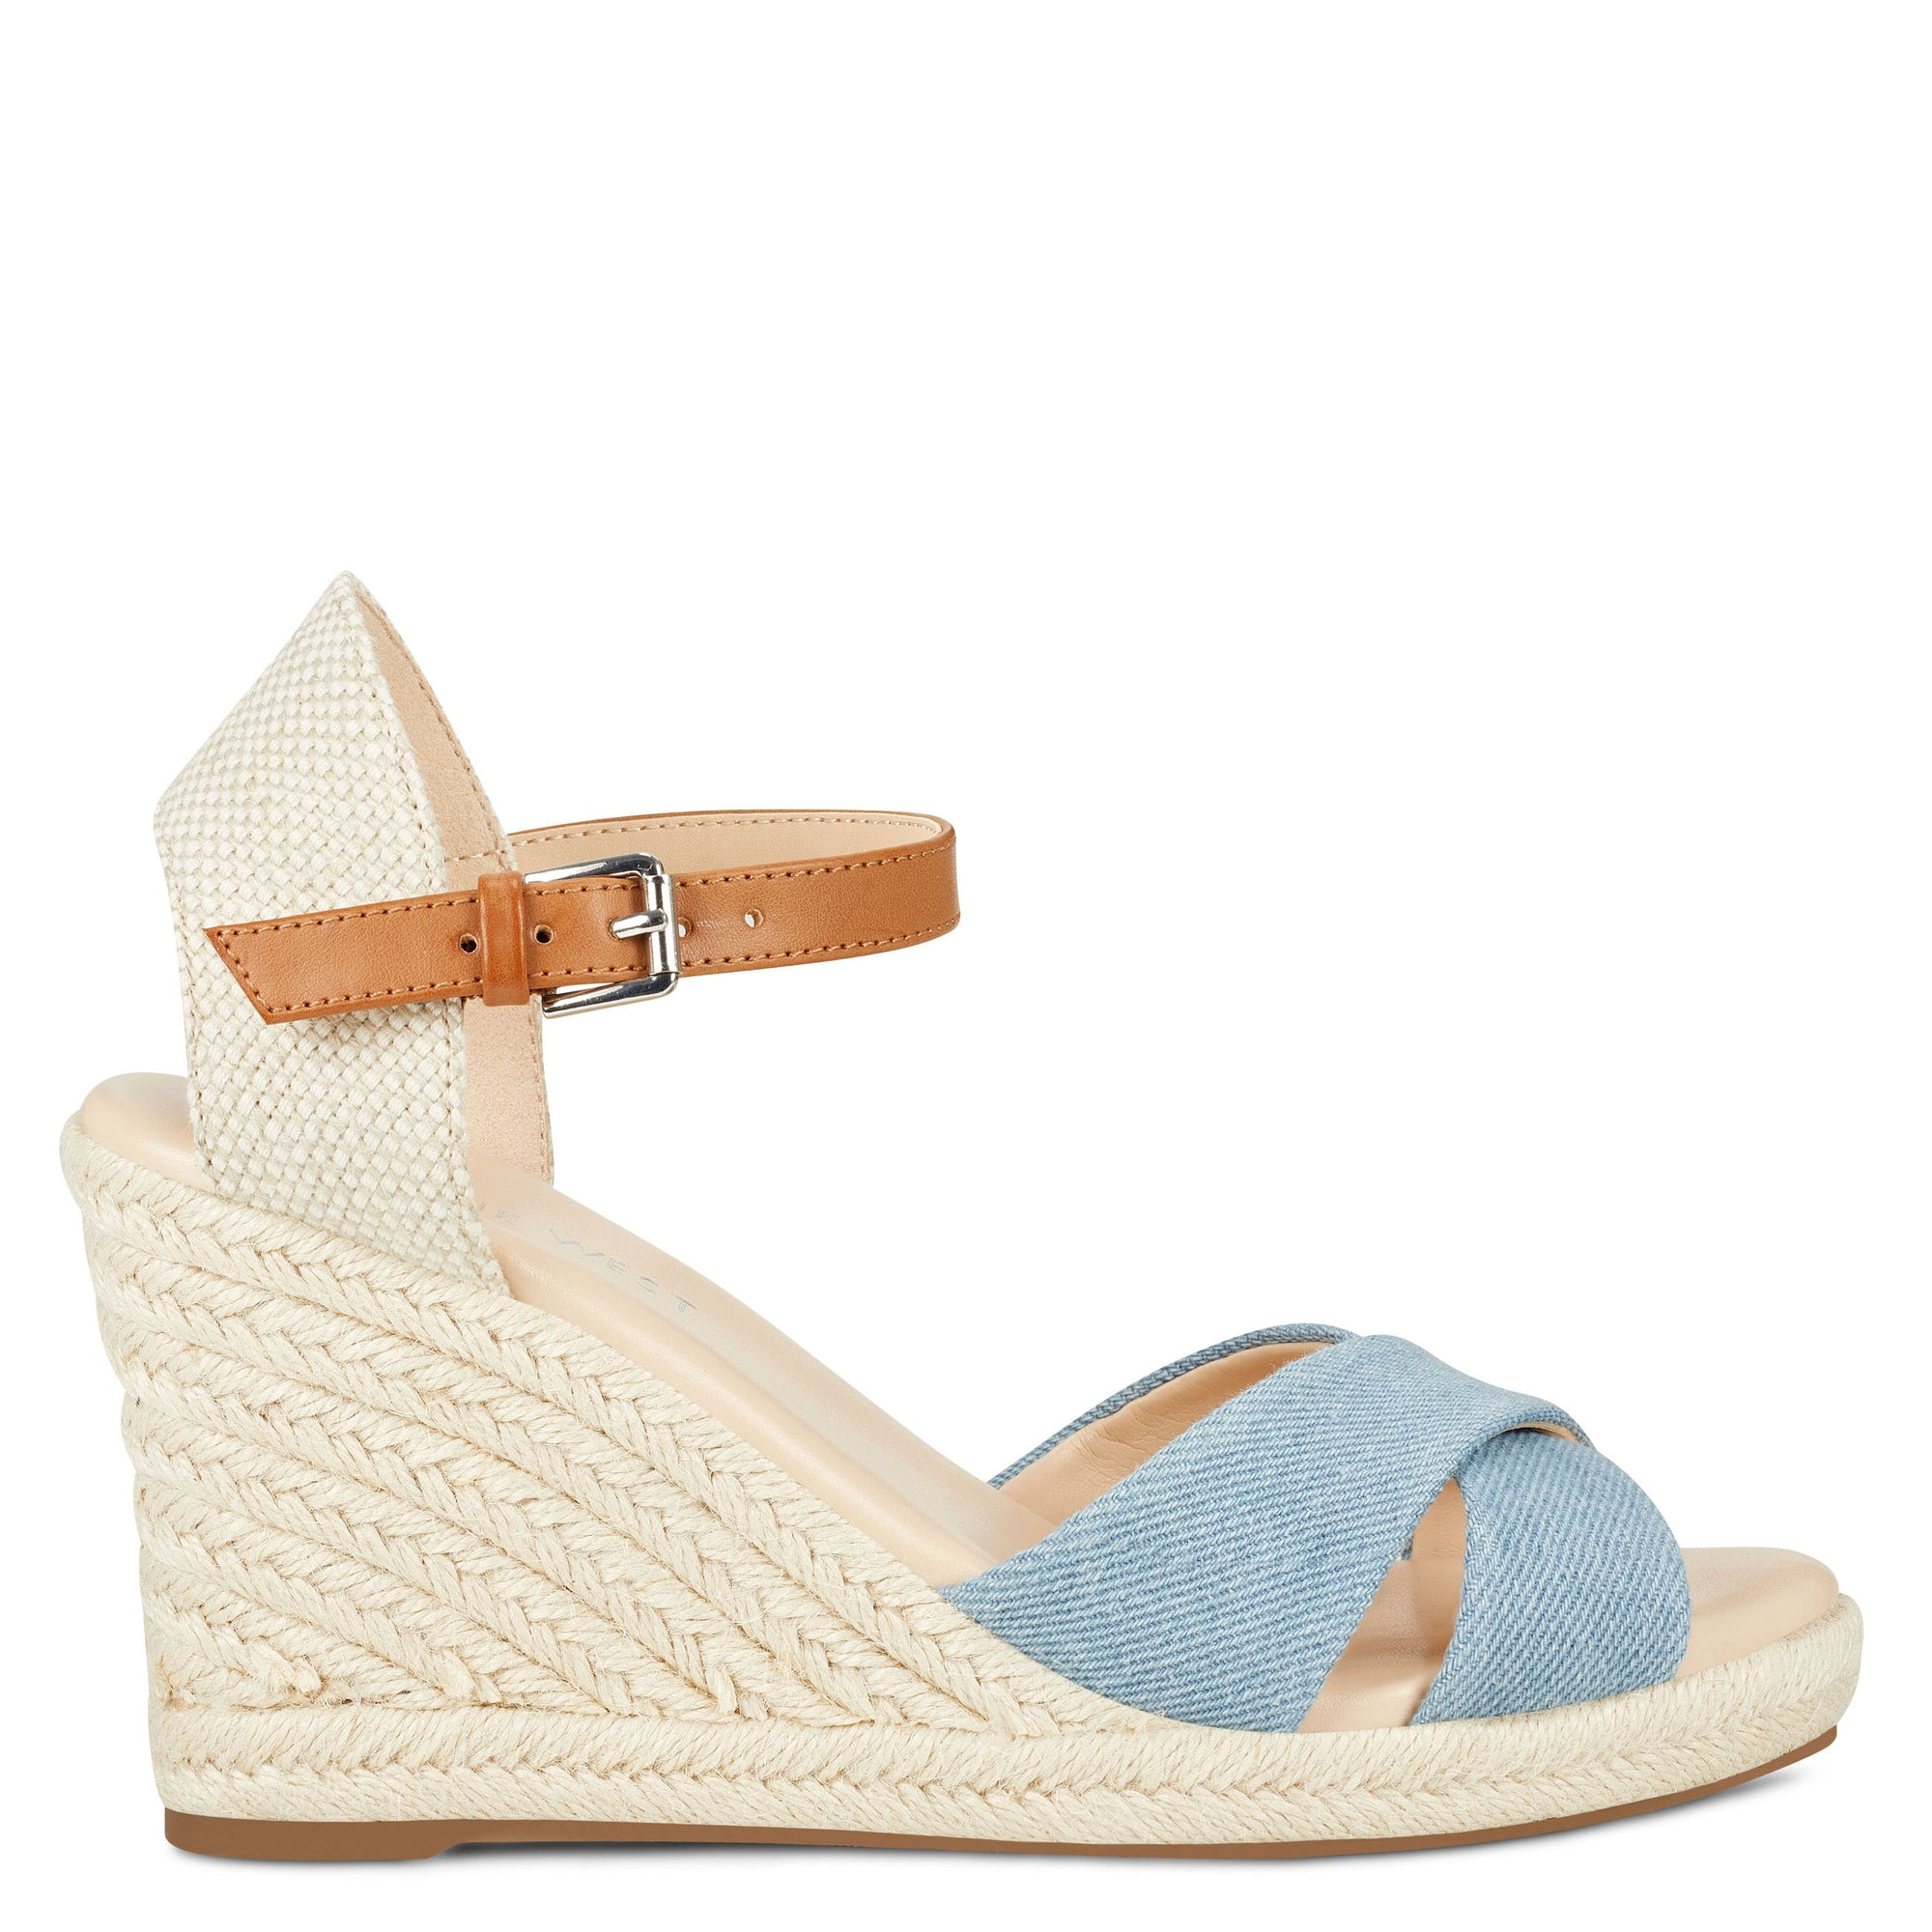 joydyn-espadrille-wedge-sandals-in-snake-print